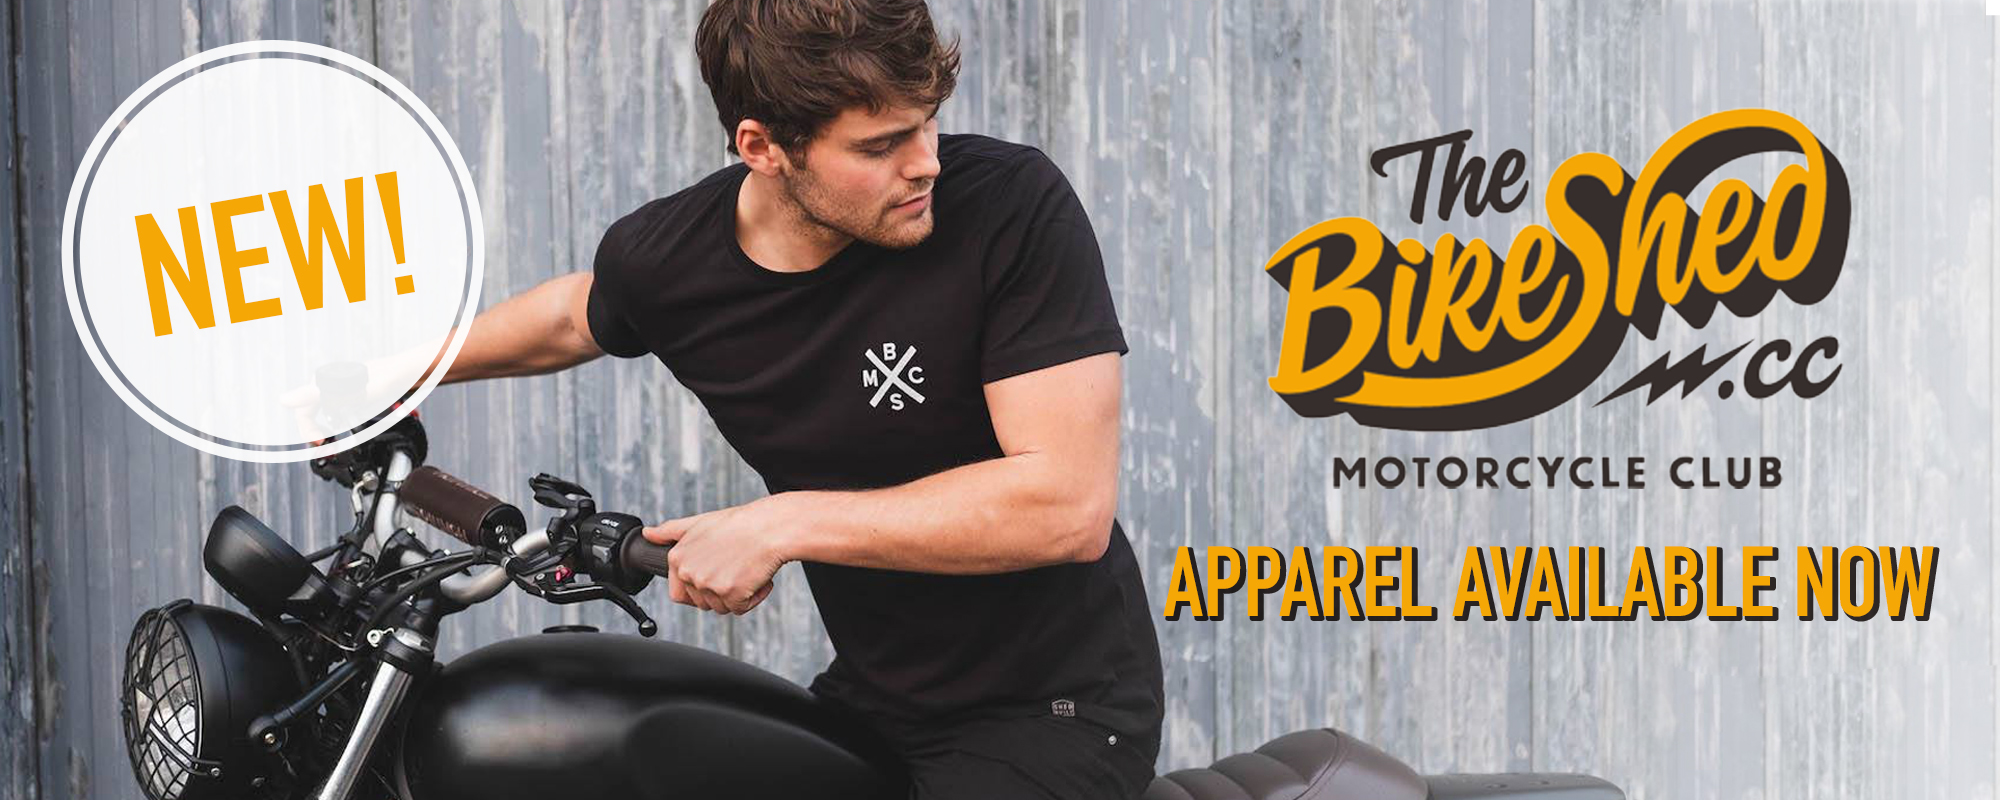 BIKE SHED CLOTHING BIKE SHED MOTORCYCLE CLUB T SHIRTS